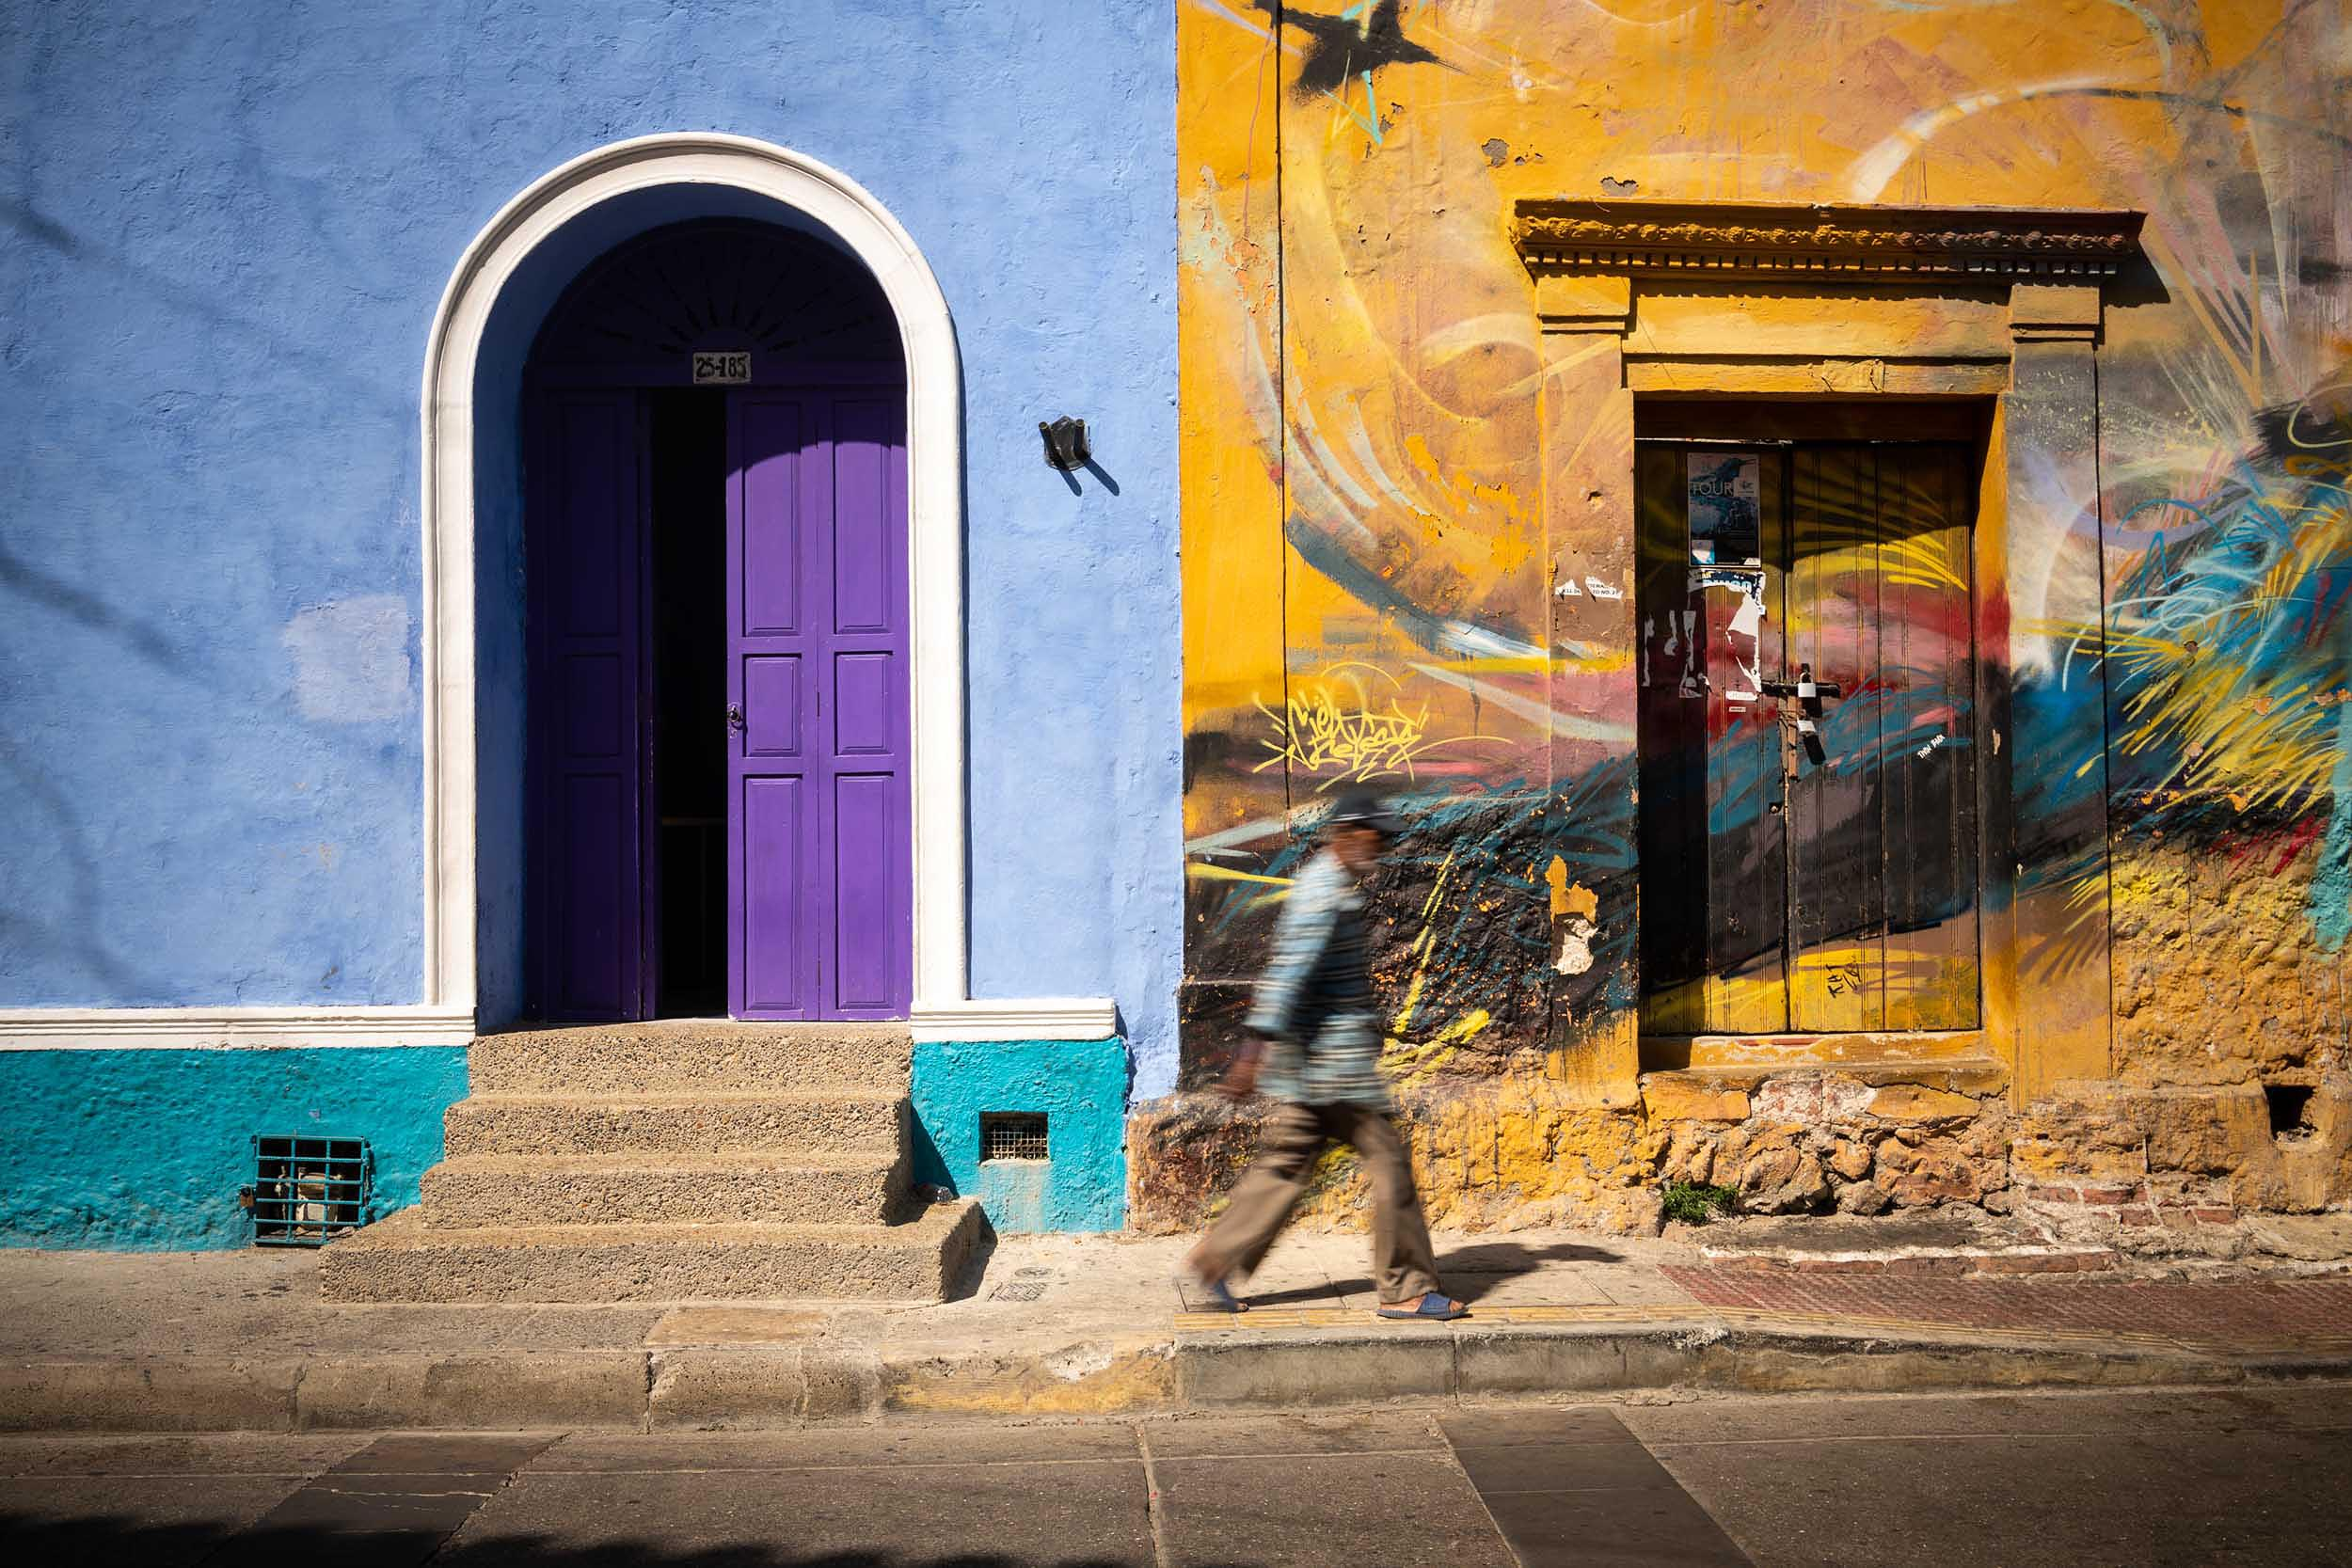 facade-getsemani-barrio-colour-street-travel-architecture-cartagena-colombia